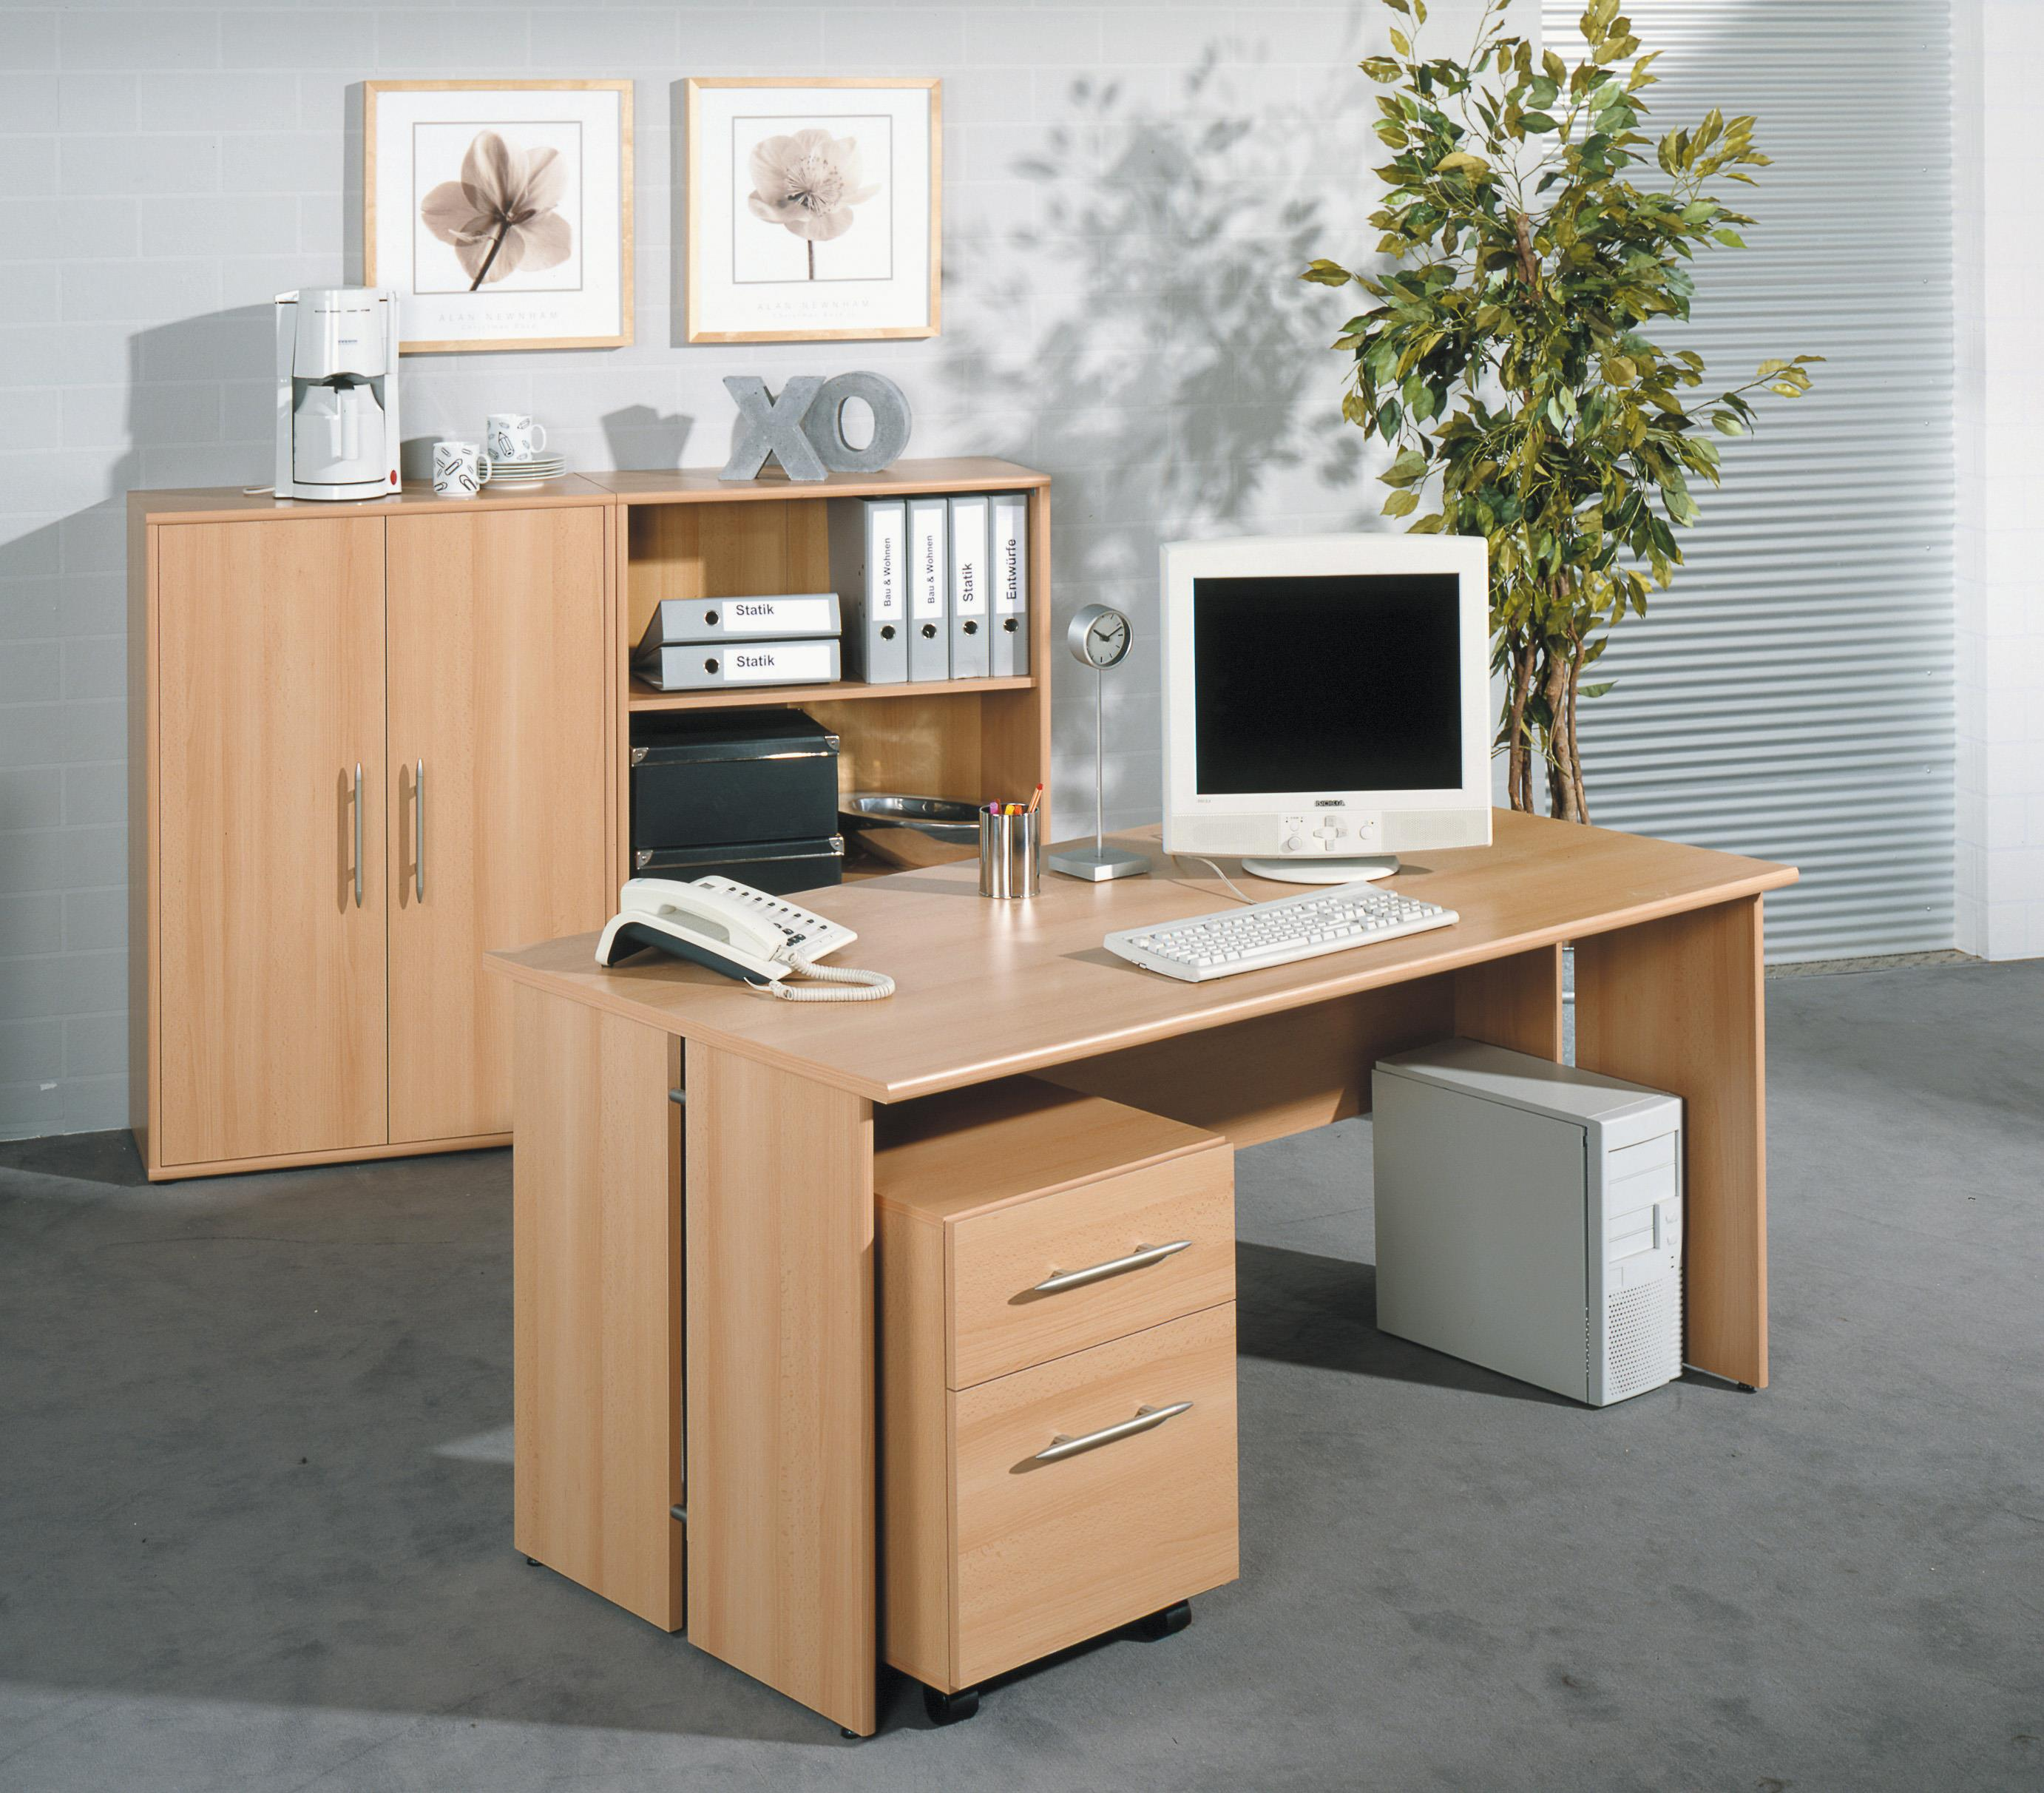 Isis 1 Person Office Package Furniture Warehouse